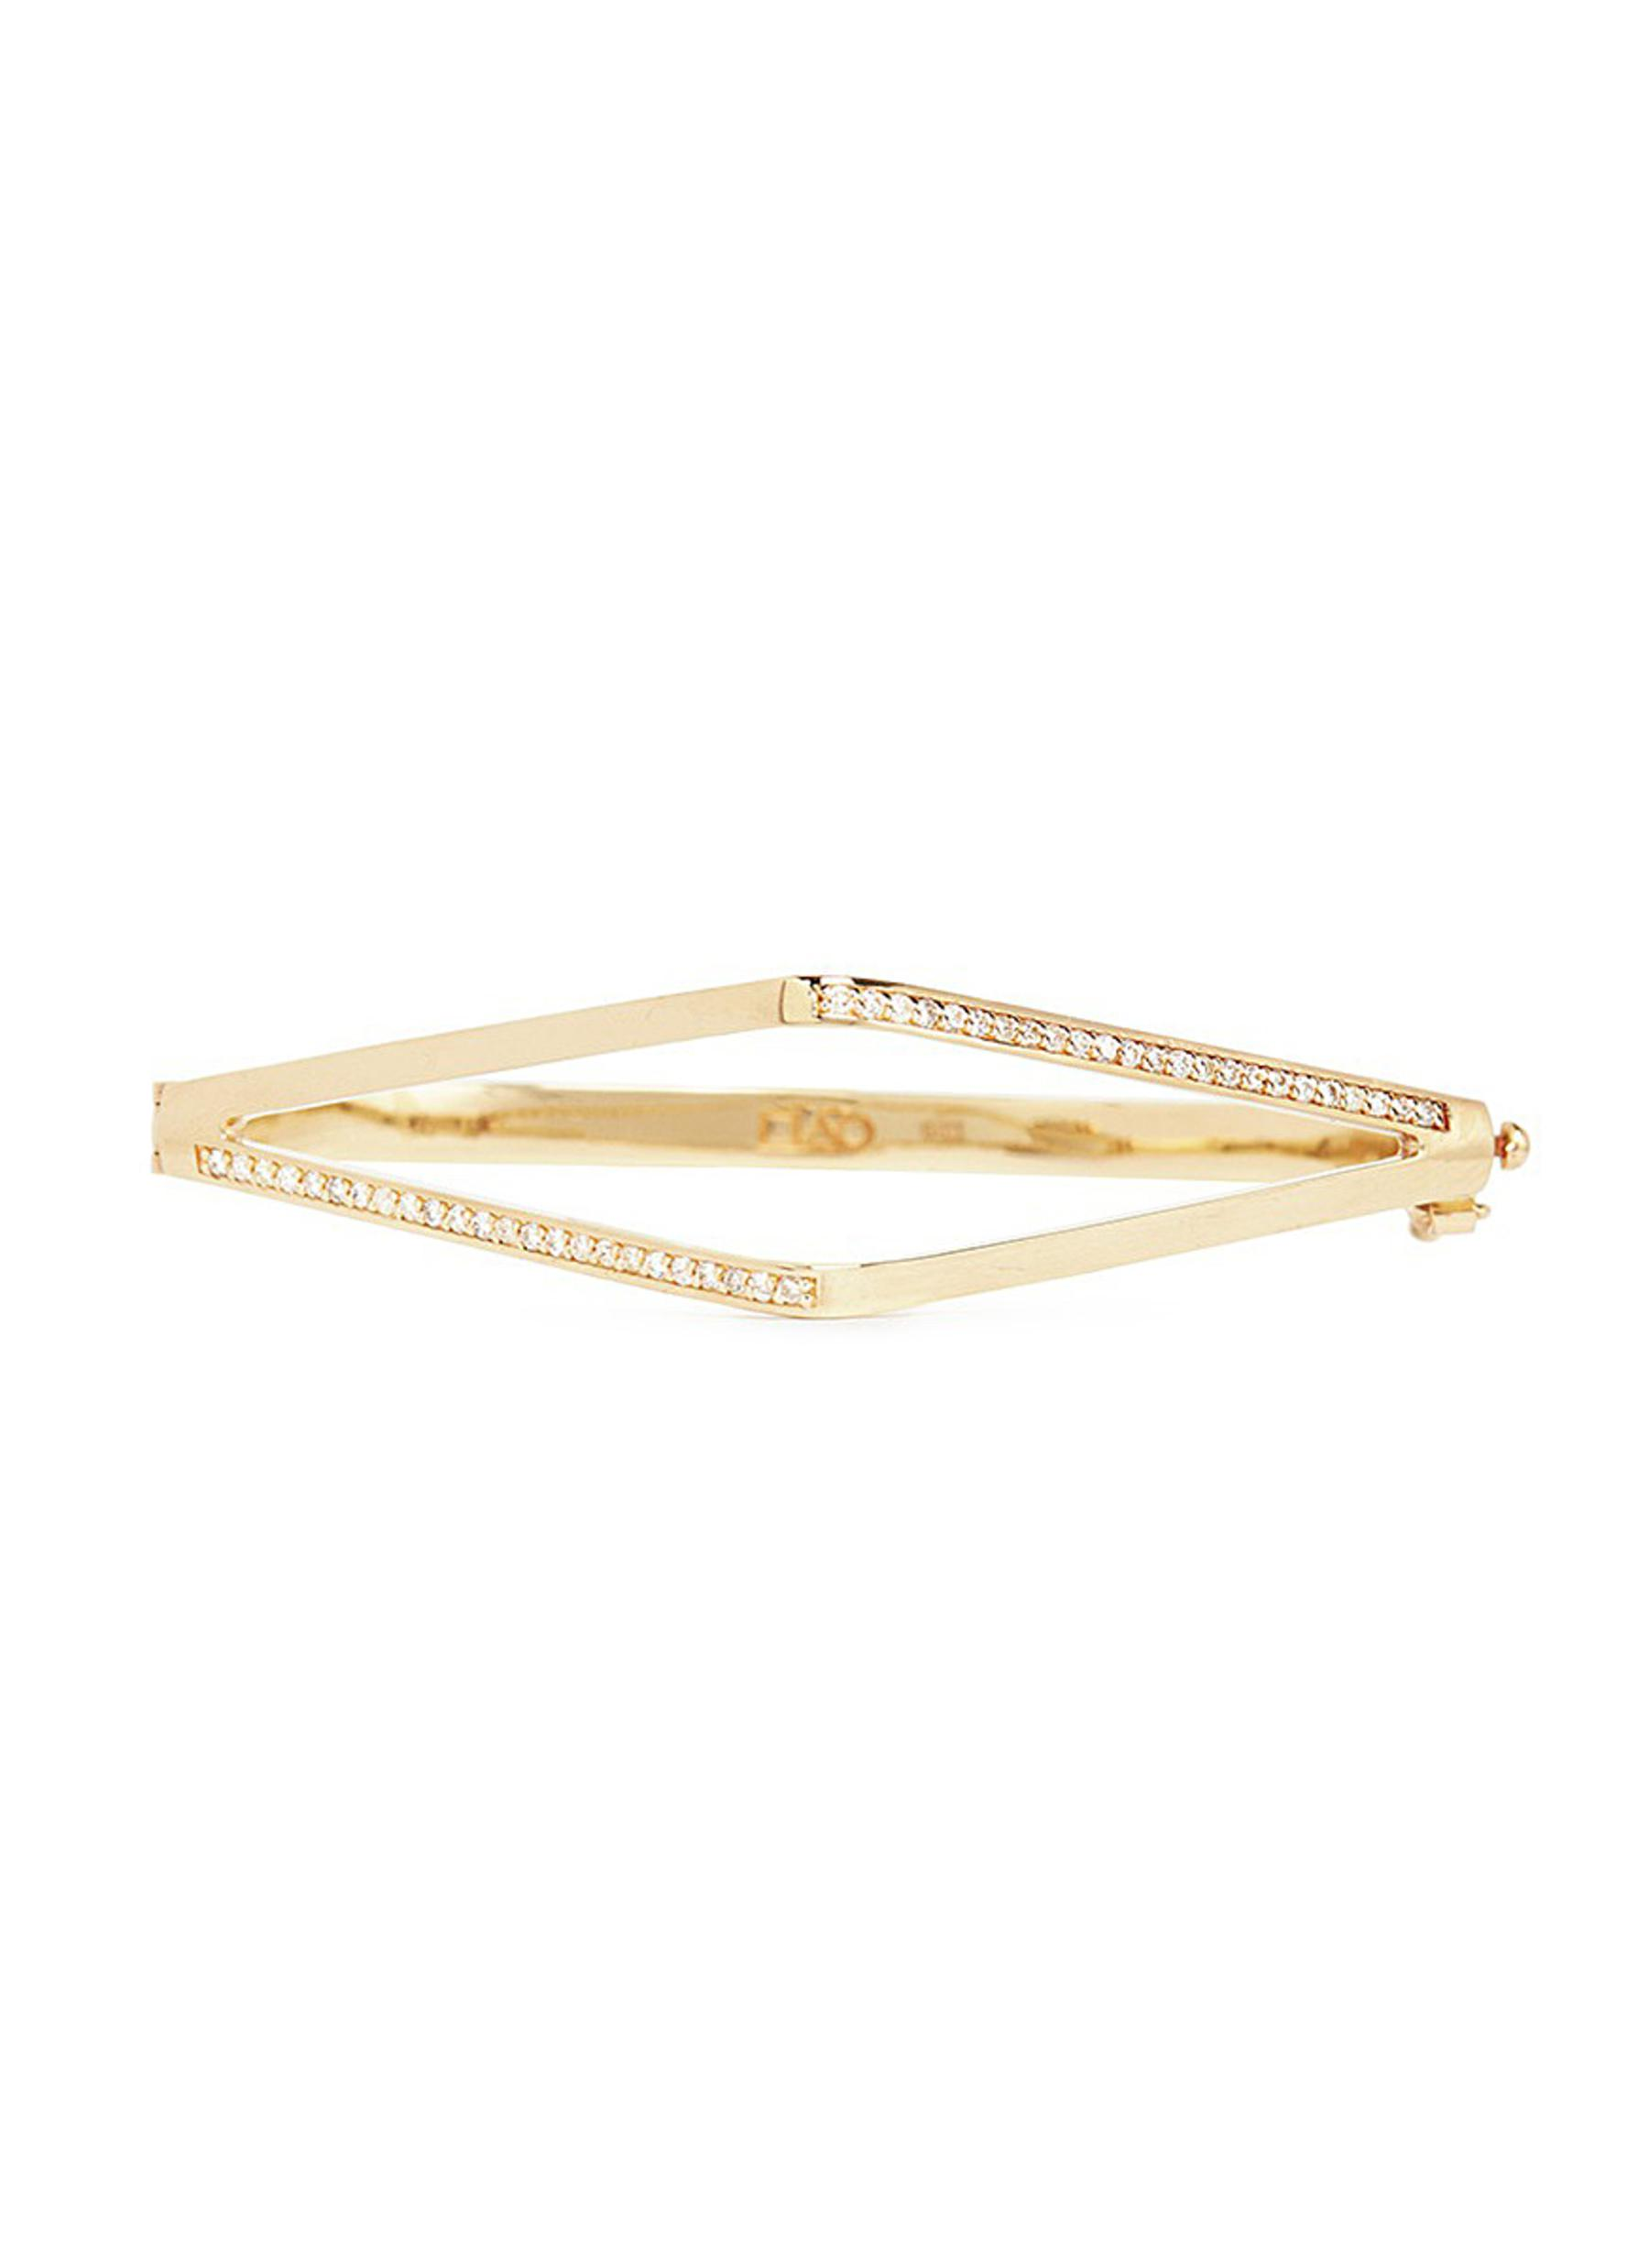 Diamond pavé 14k yellow gold cuff by Michelle Campbell